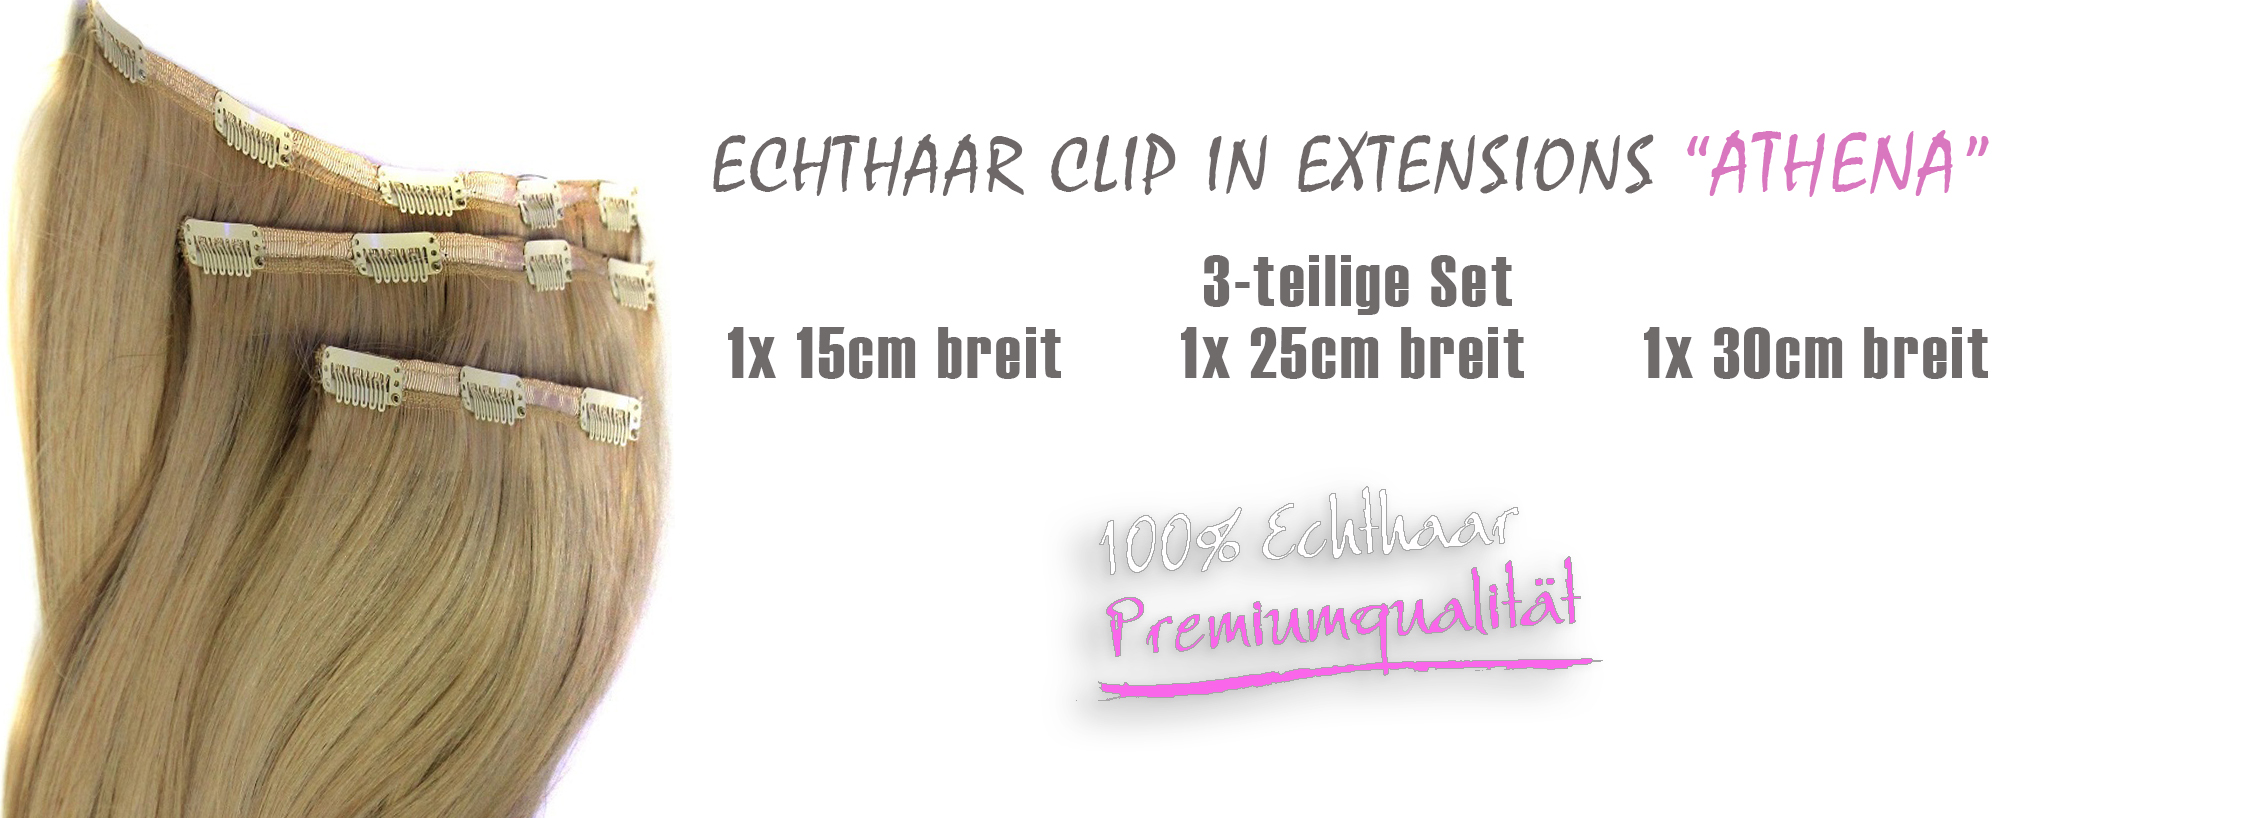 Echthaar Clip in Extensions Athena